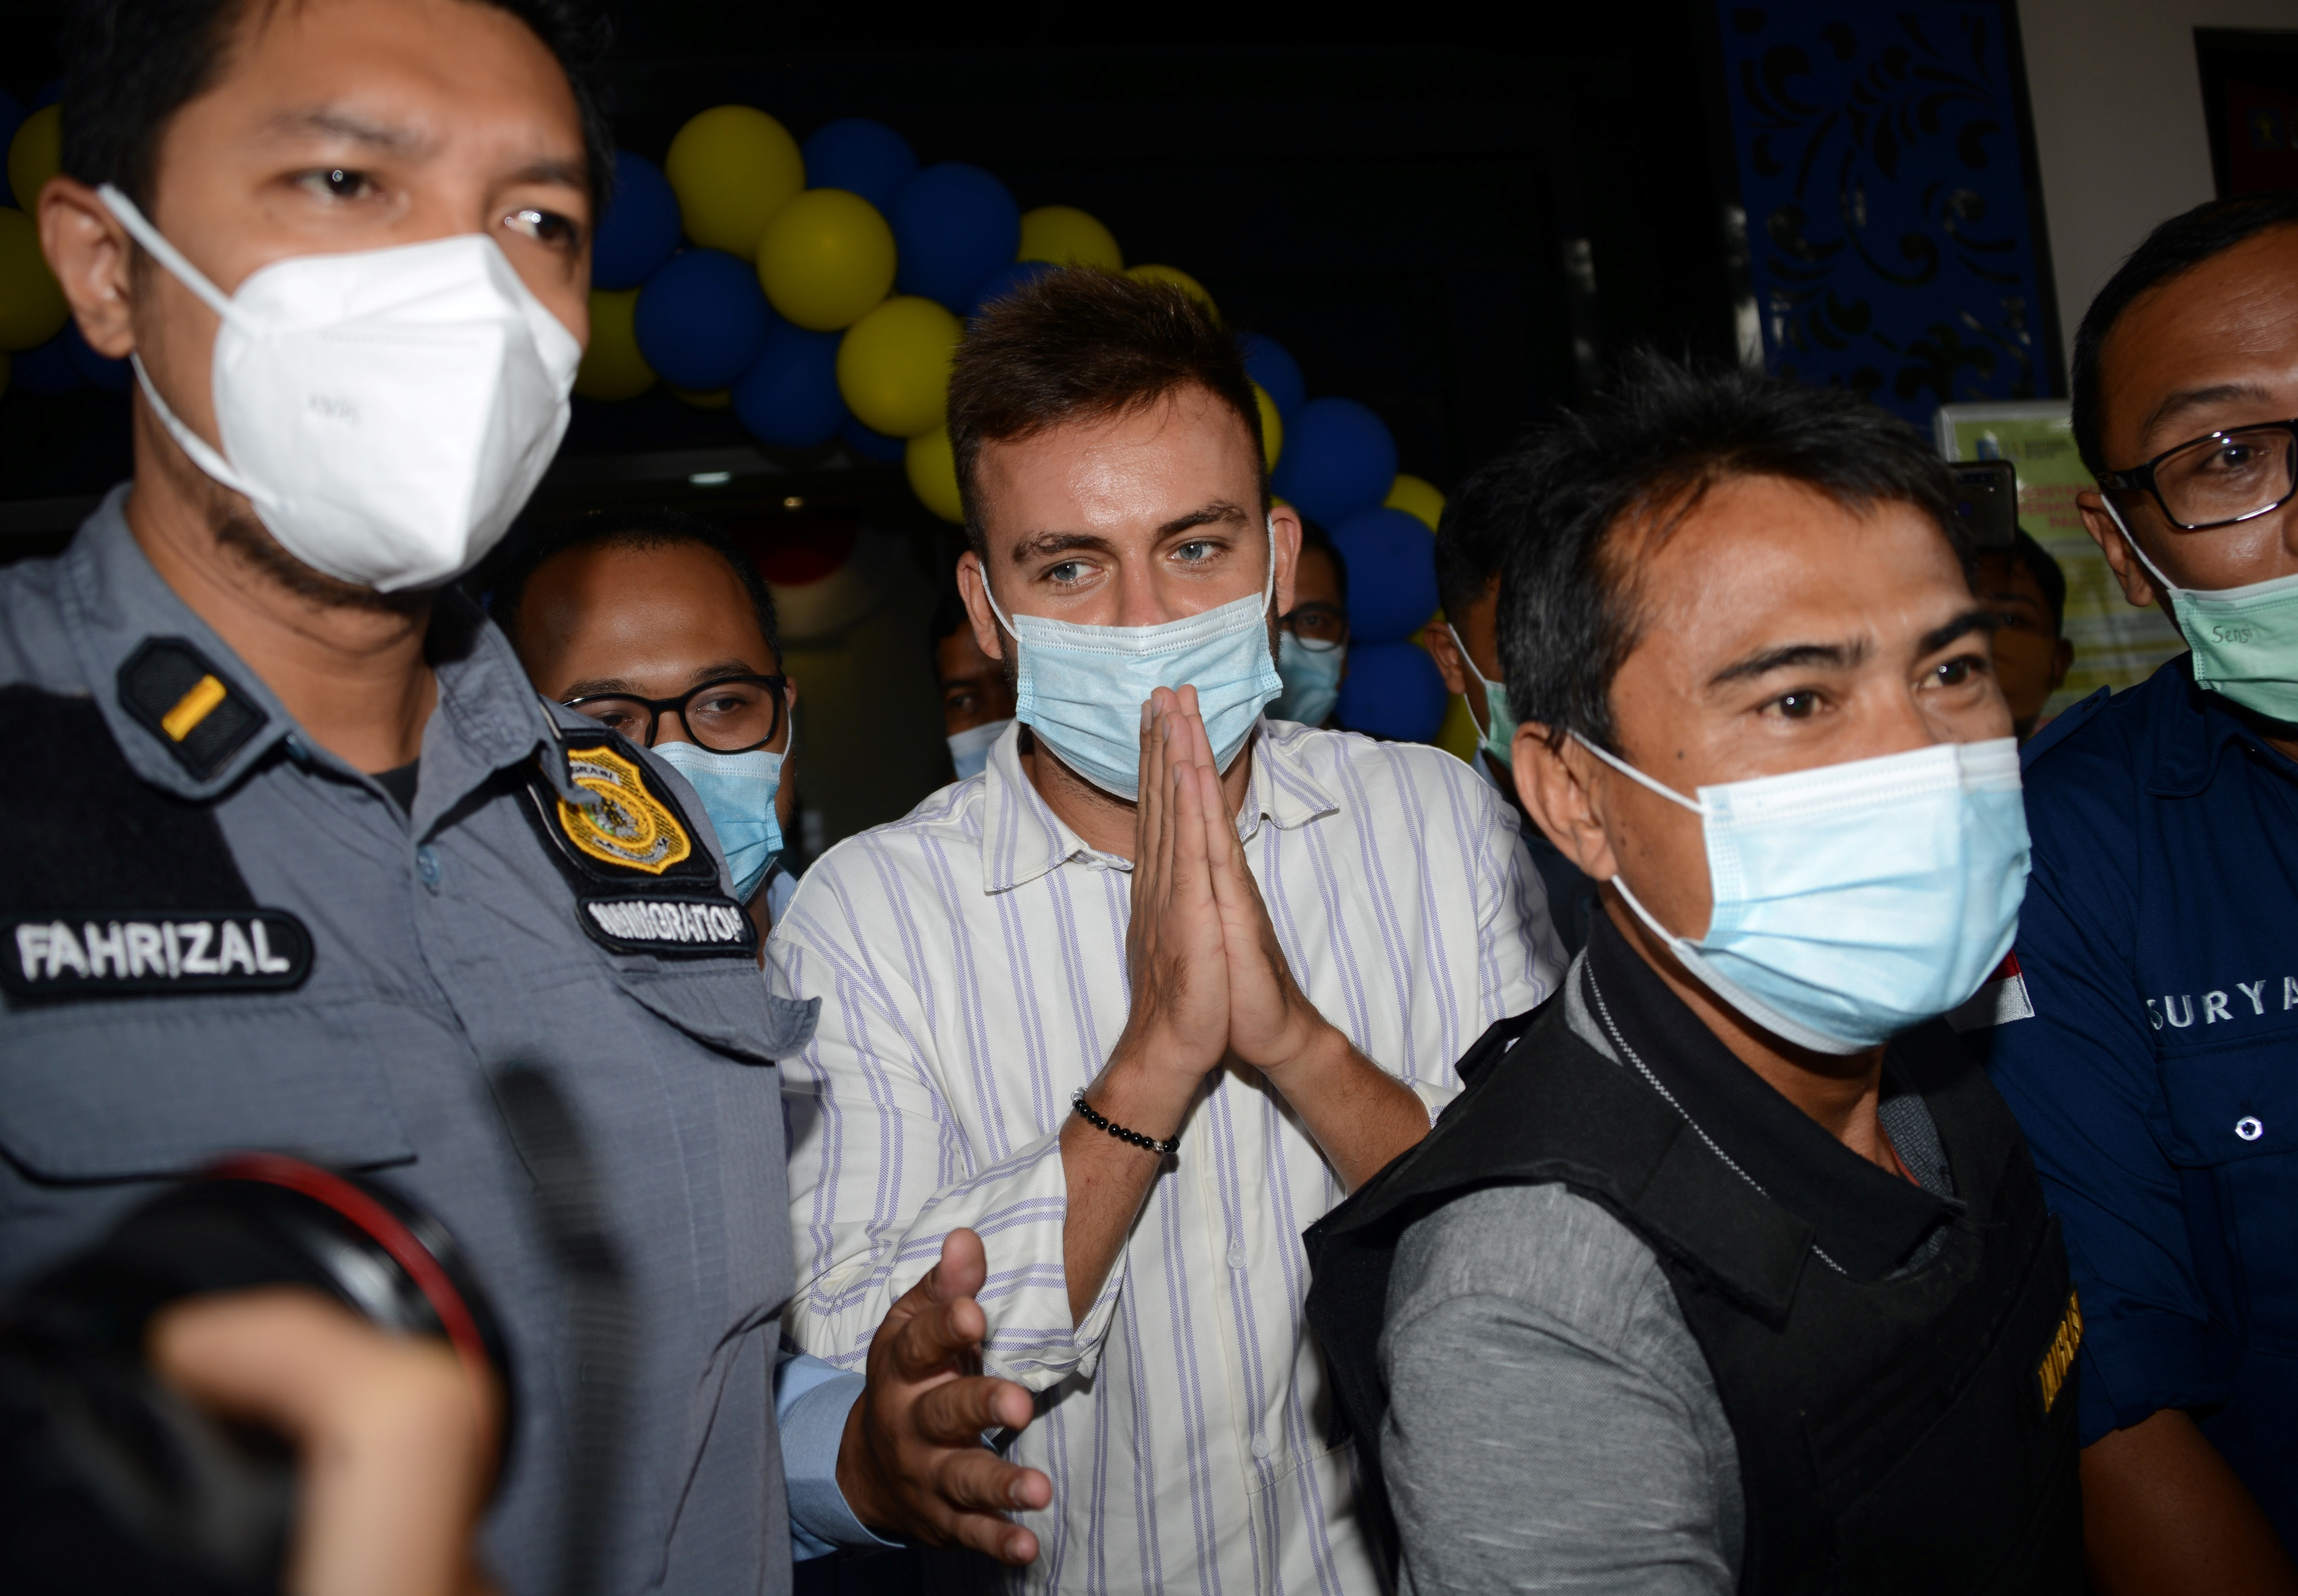 Russian national Sergey Kosenko is escorted by Indonesian immigration officials to Bali's Ngurah Rai Airport (PHOTO: AFP / SONNY TUMBELAKA)